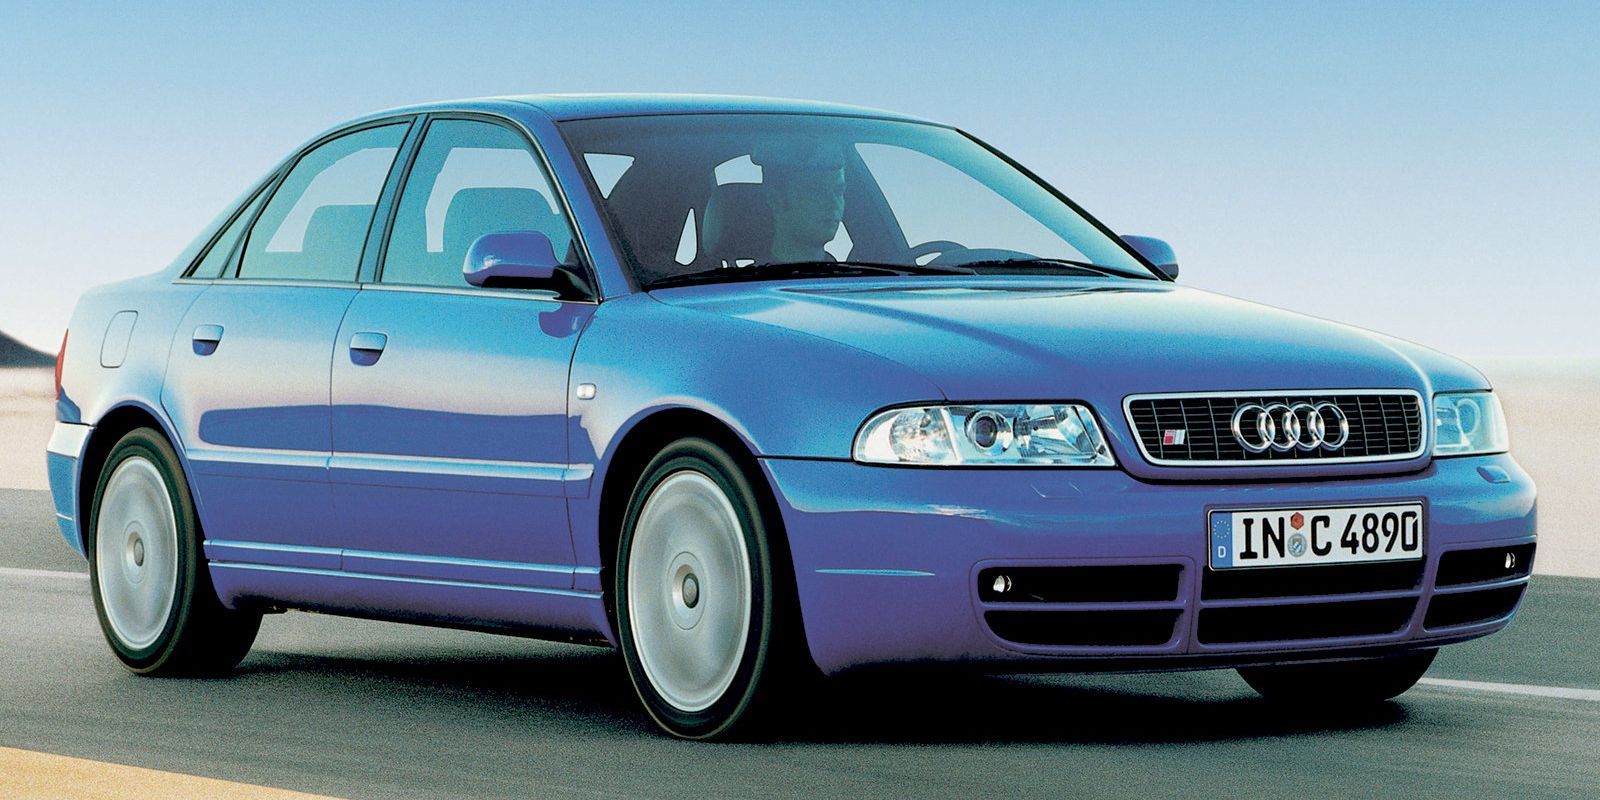 Cheap Fast Cars In Fast Affordable Cars That Go MPH - Fast reliable cars